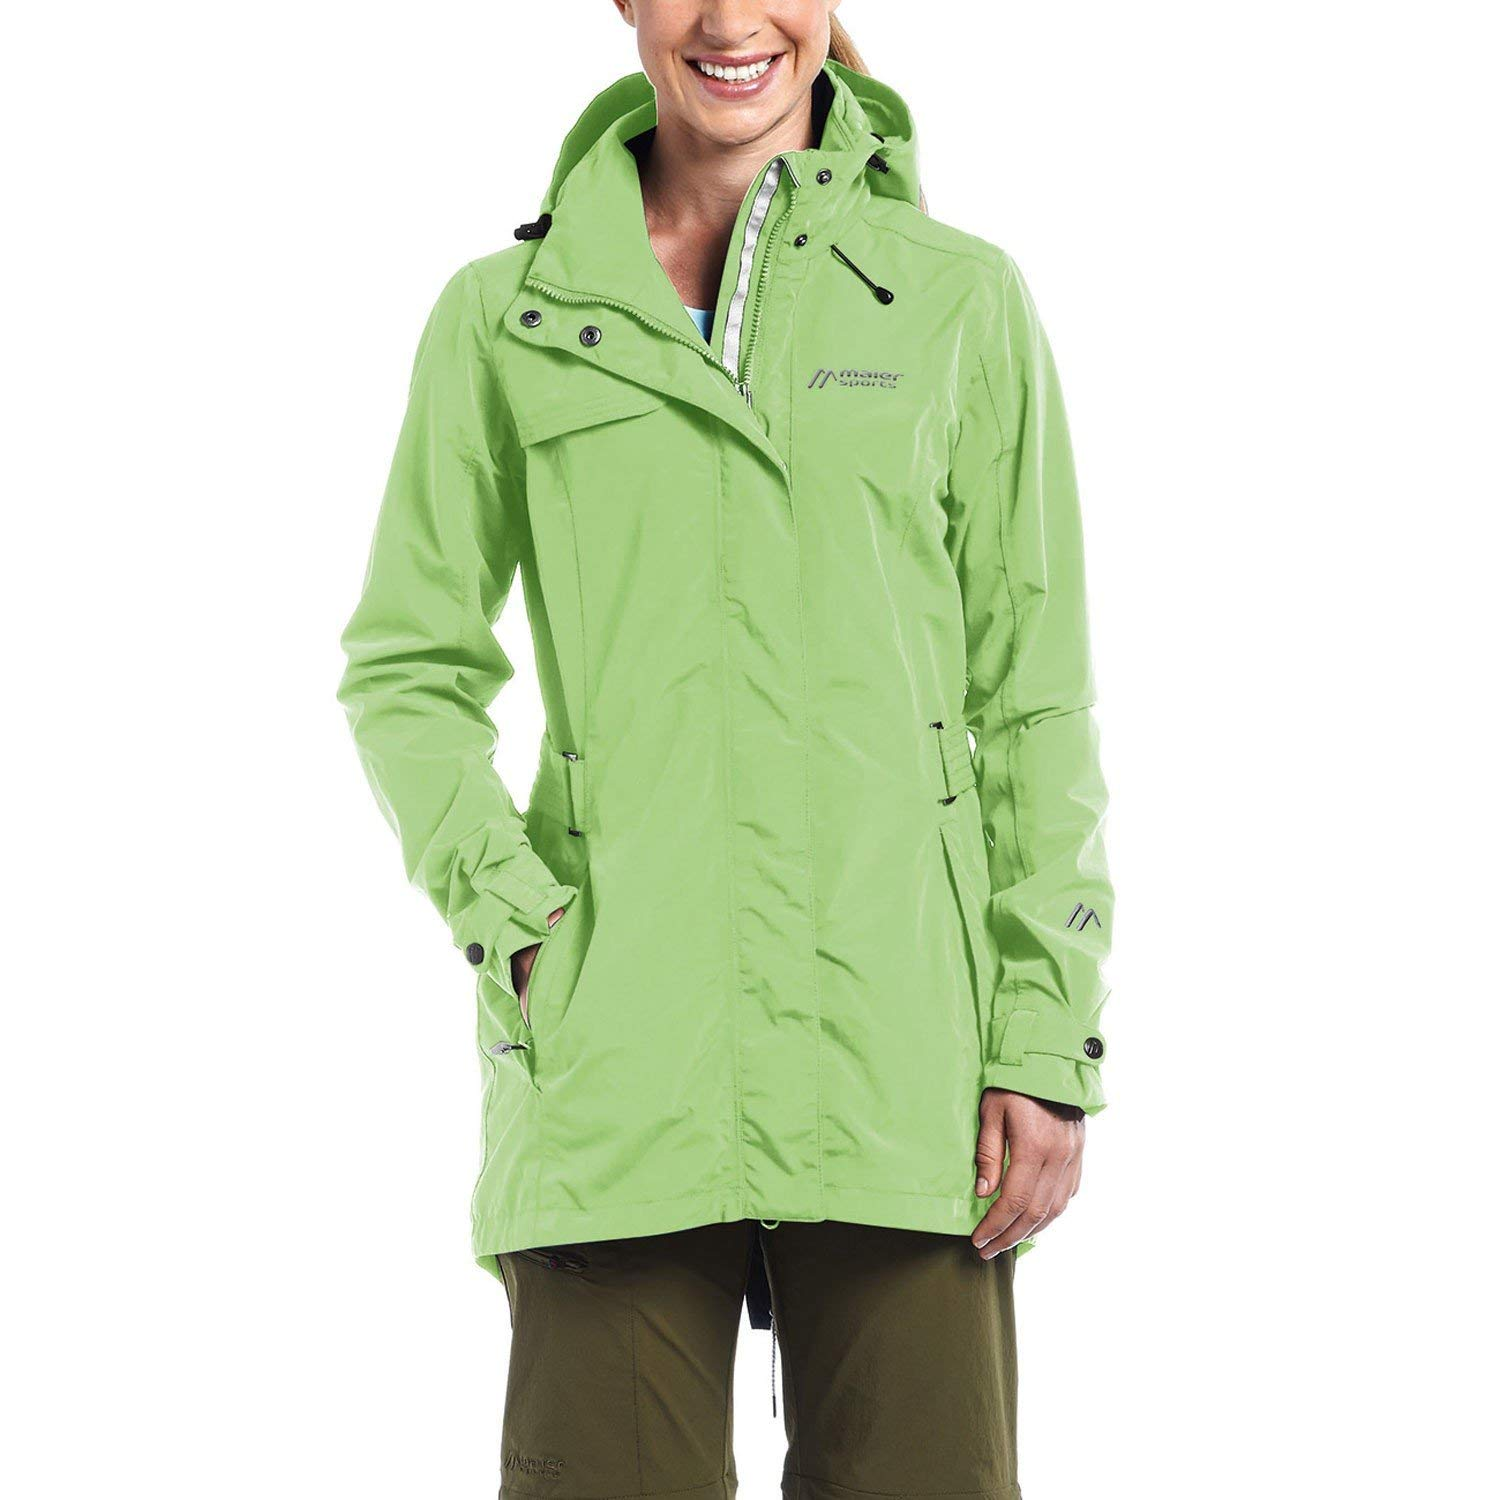 Maier Sports Damen Funktionsjacke Alva – summergreen - 50